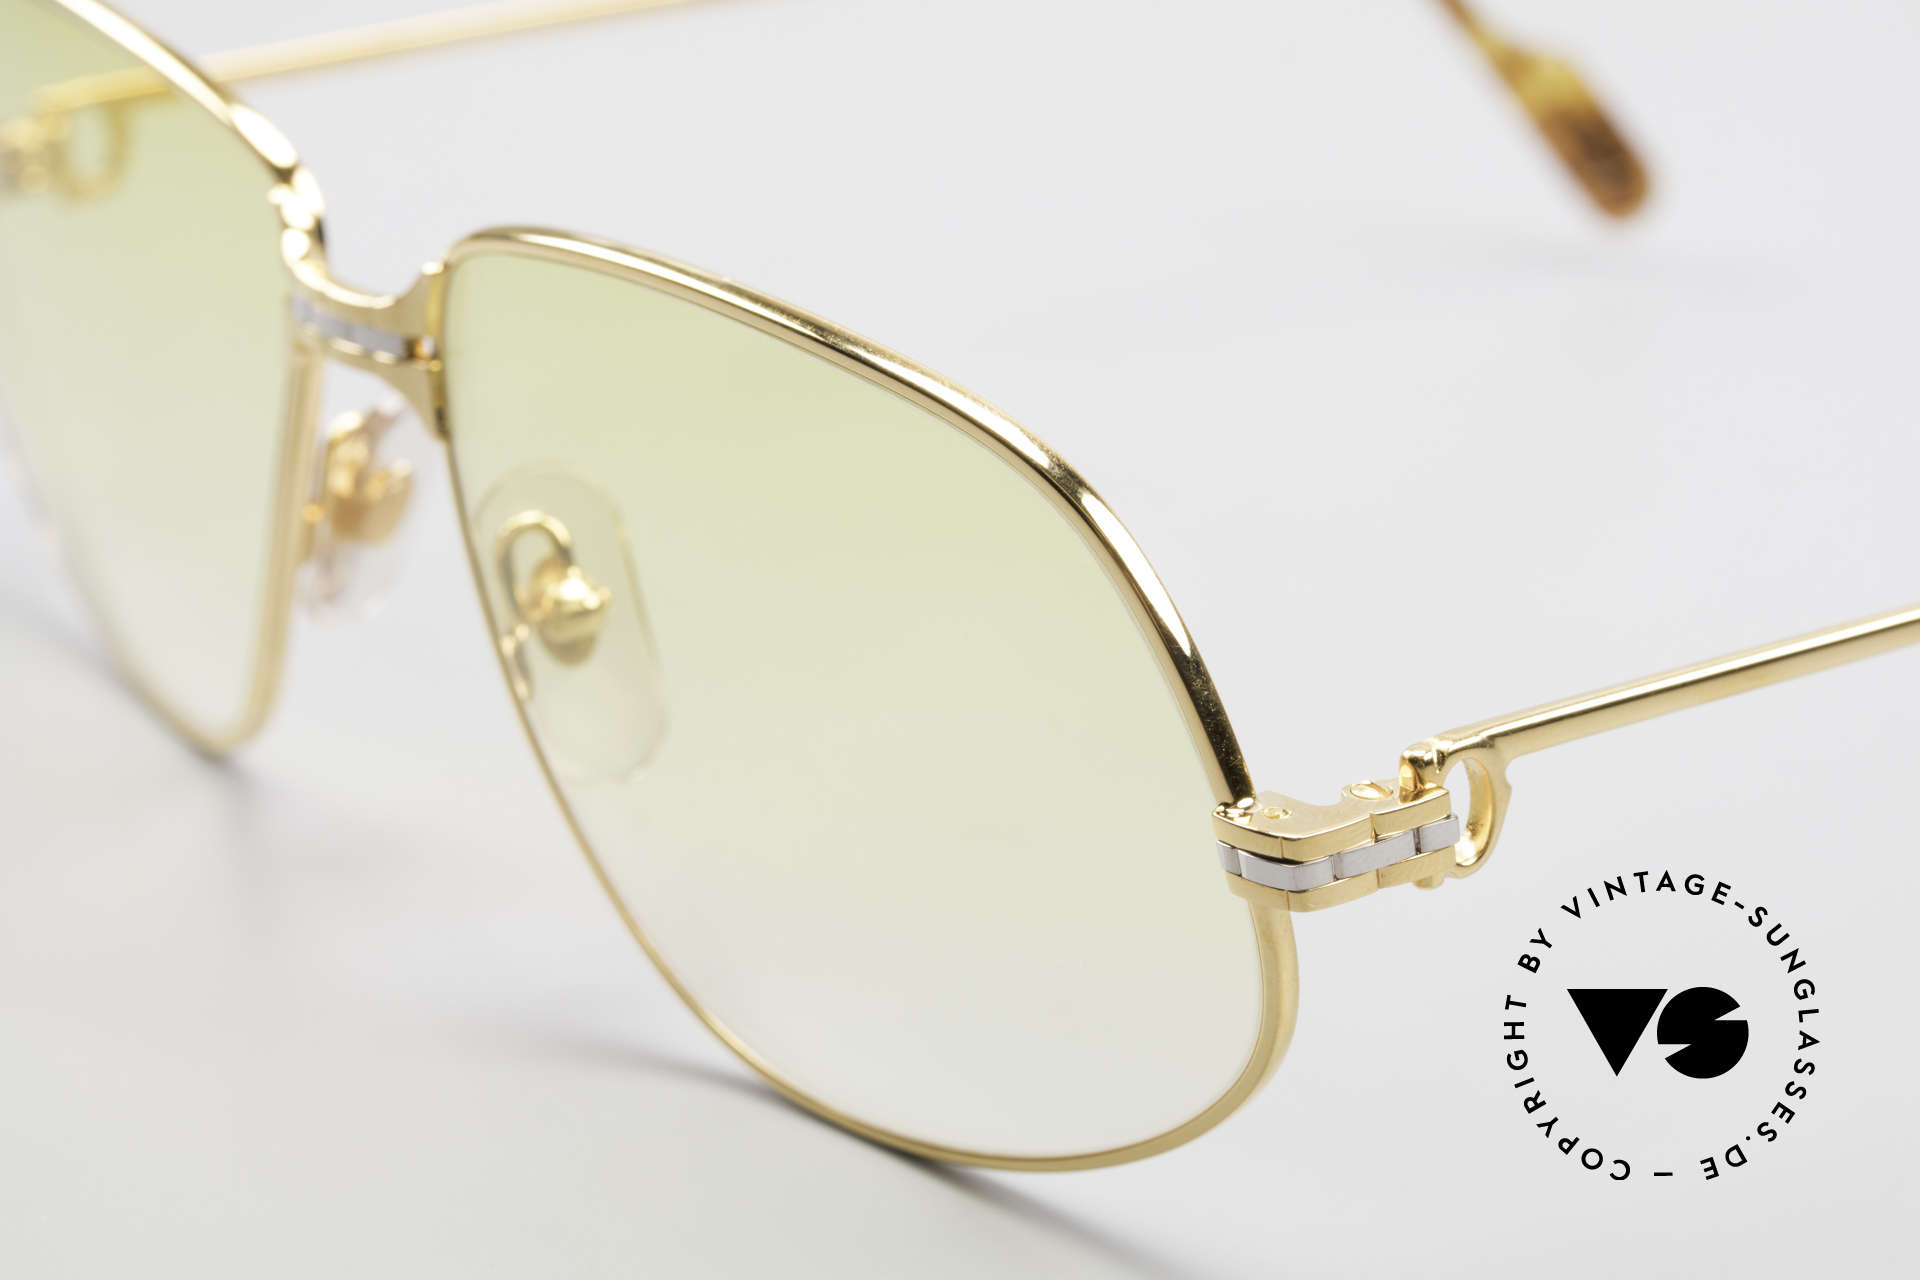 Cartier Panthere G.M. - XL Yellow Lenses And Bvlgari Case, 22ct gold-plated; yellow-gradient lenses, wearable at night, Made for Men and Women